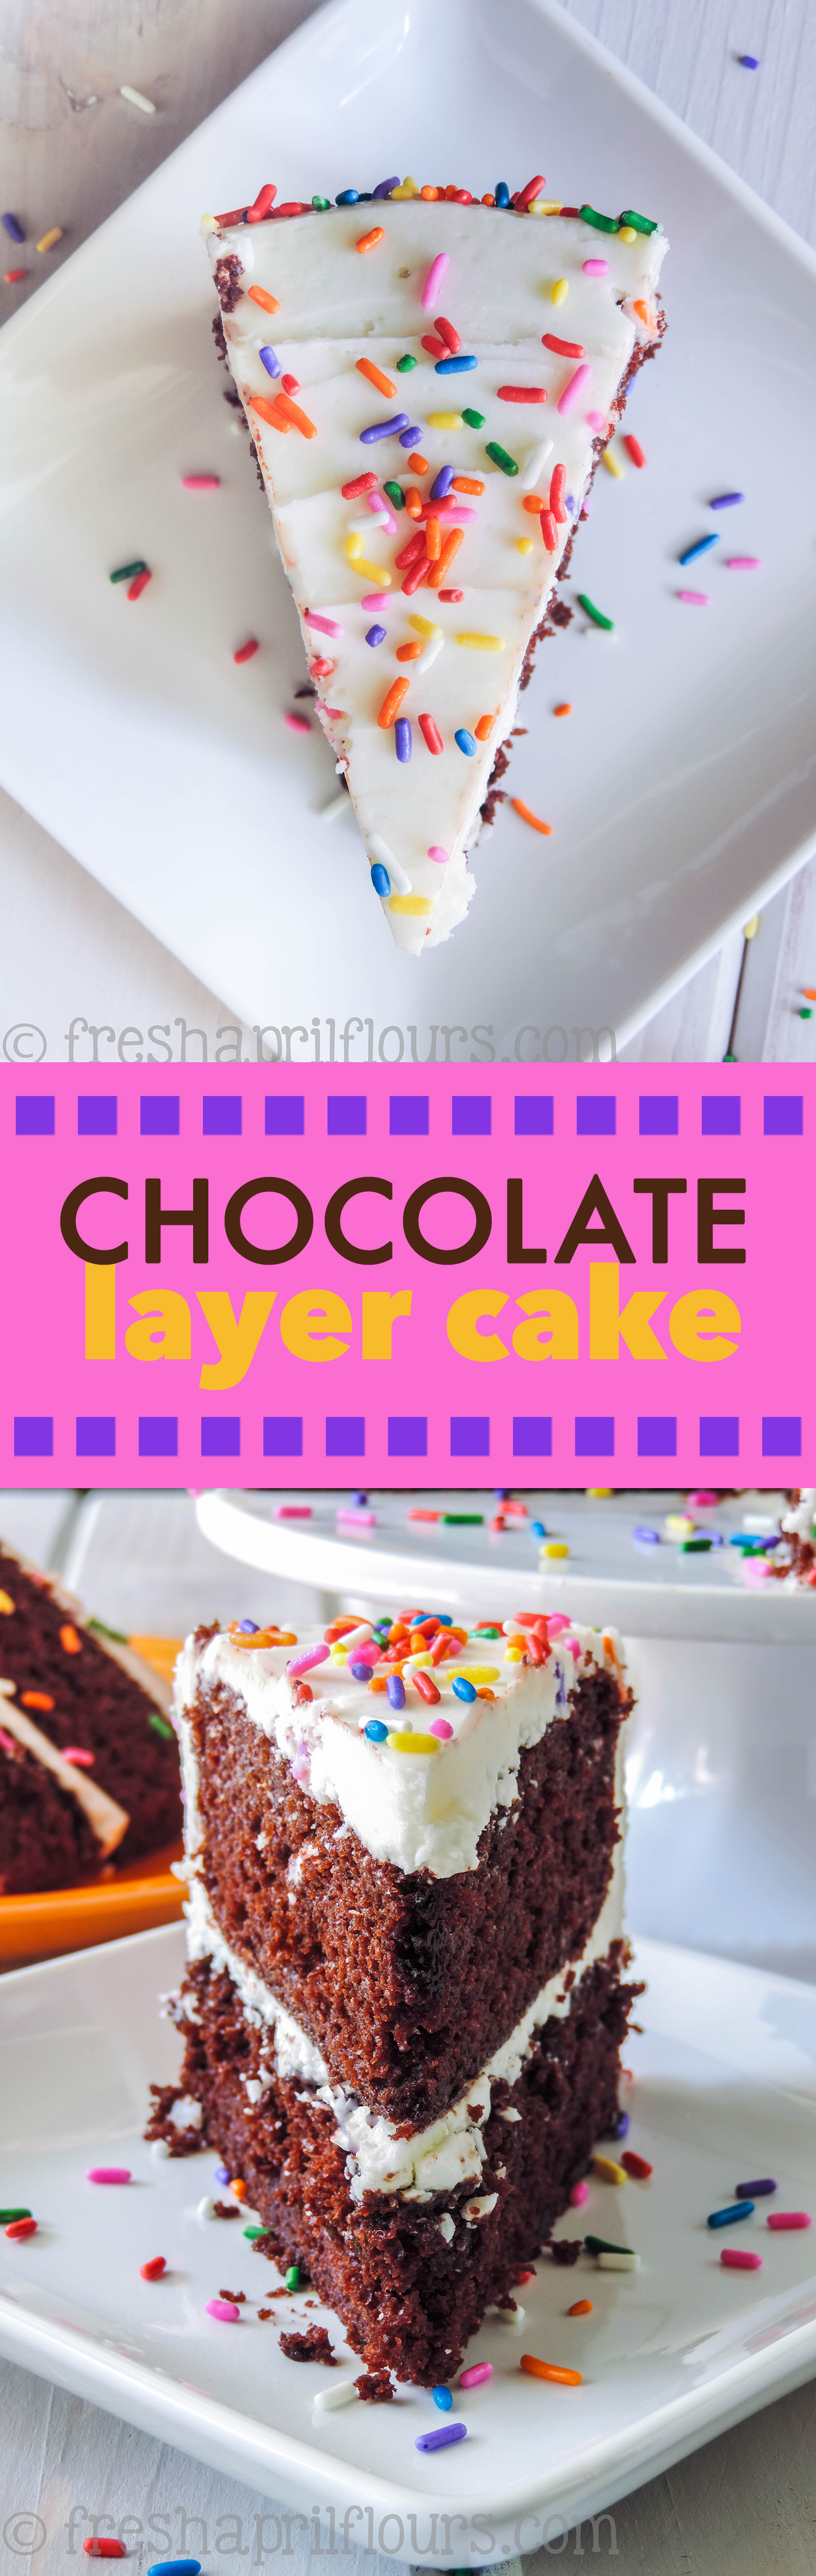 Chocolate Layer Cake: Soft, moist, and smooth chocolate cake with the richest chocolate flavor you'll ever taste. Super easy and only one bowl needed!